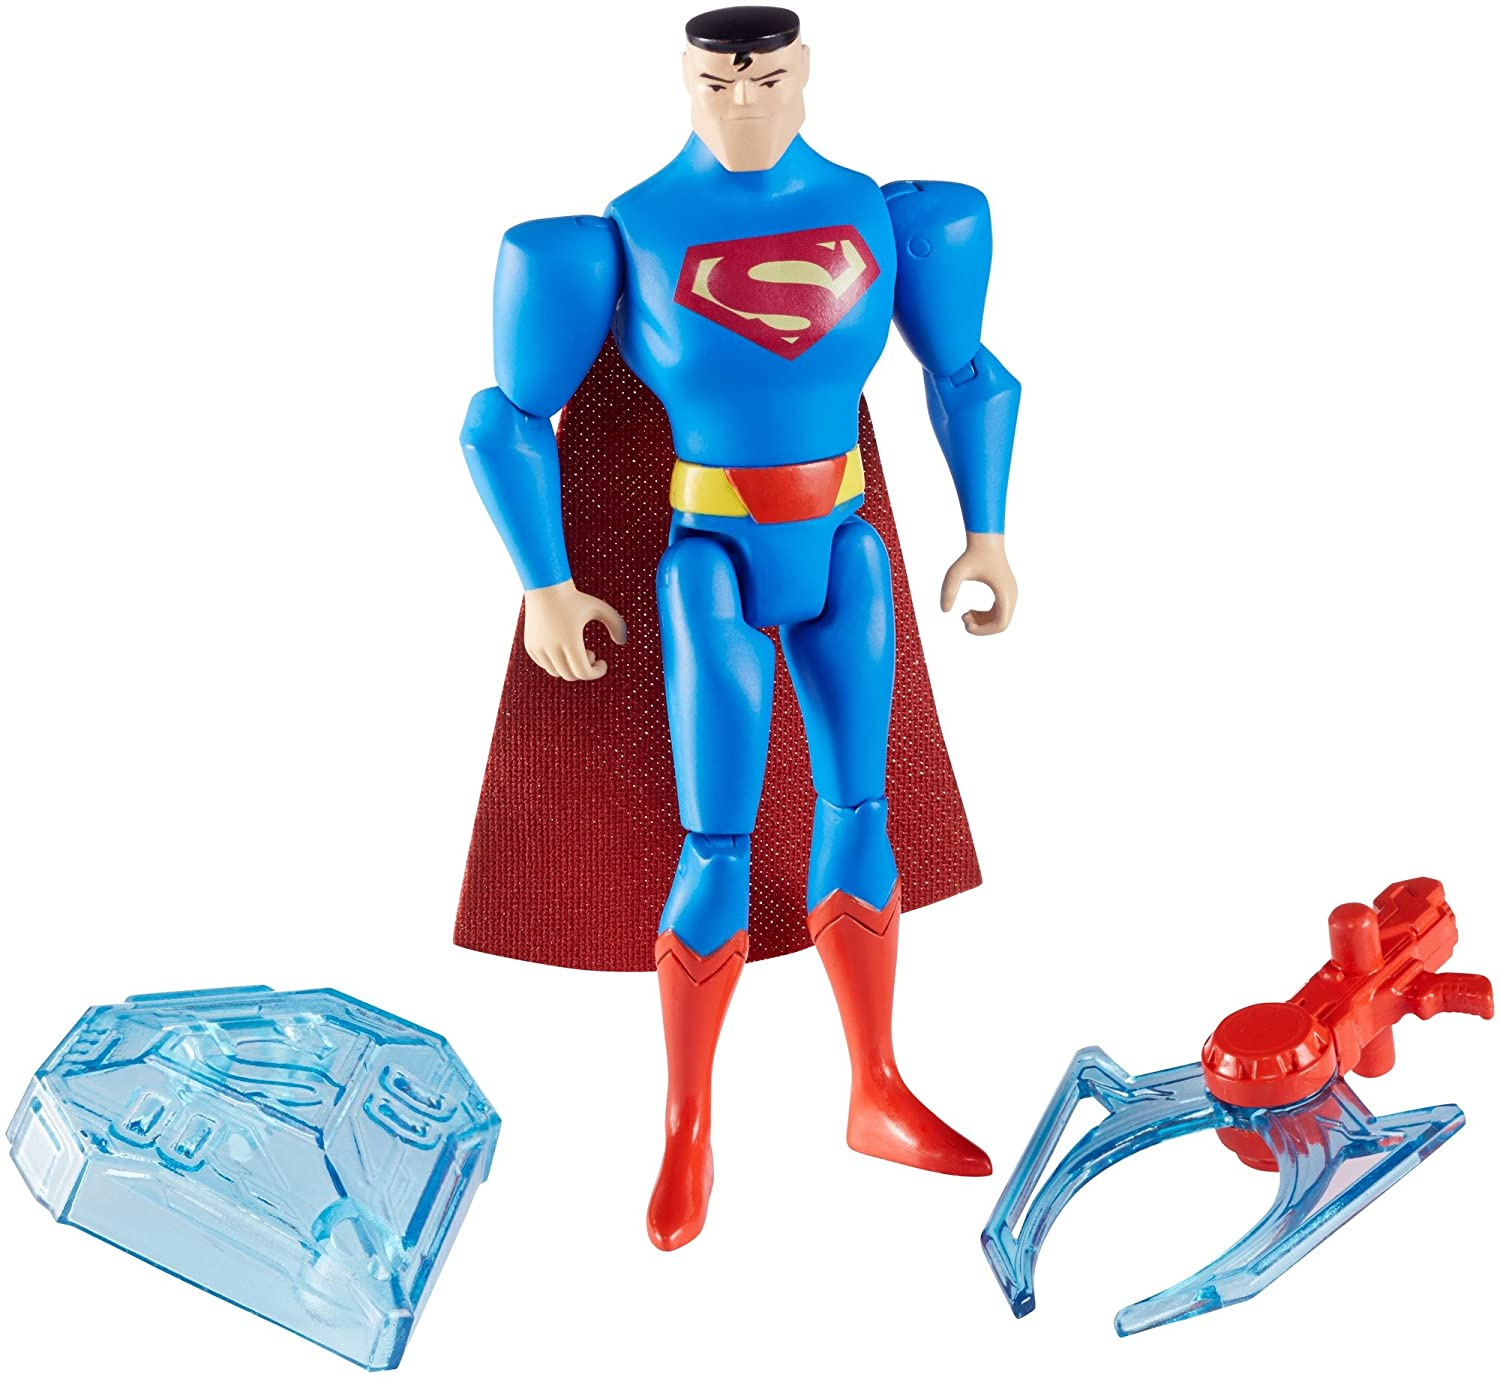 DC Justice League Action Superman Figure 4.5 4.5 Mattel FGP23